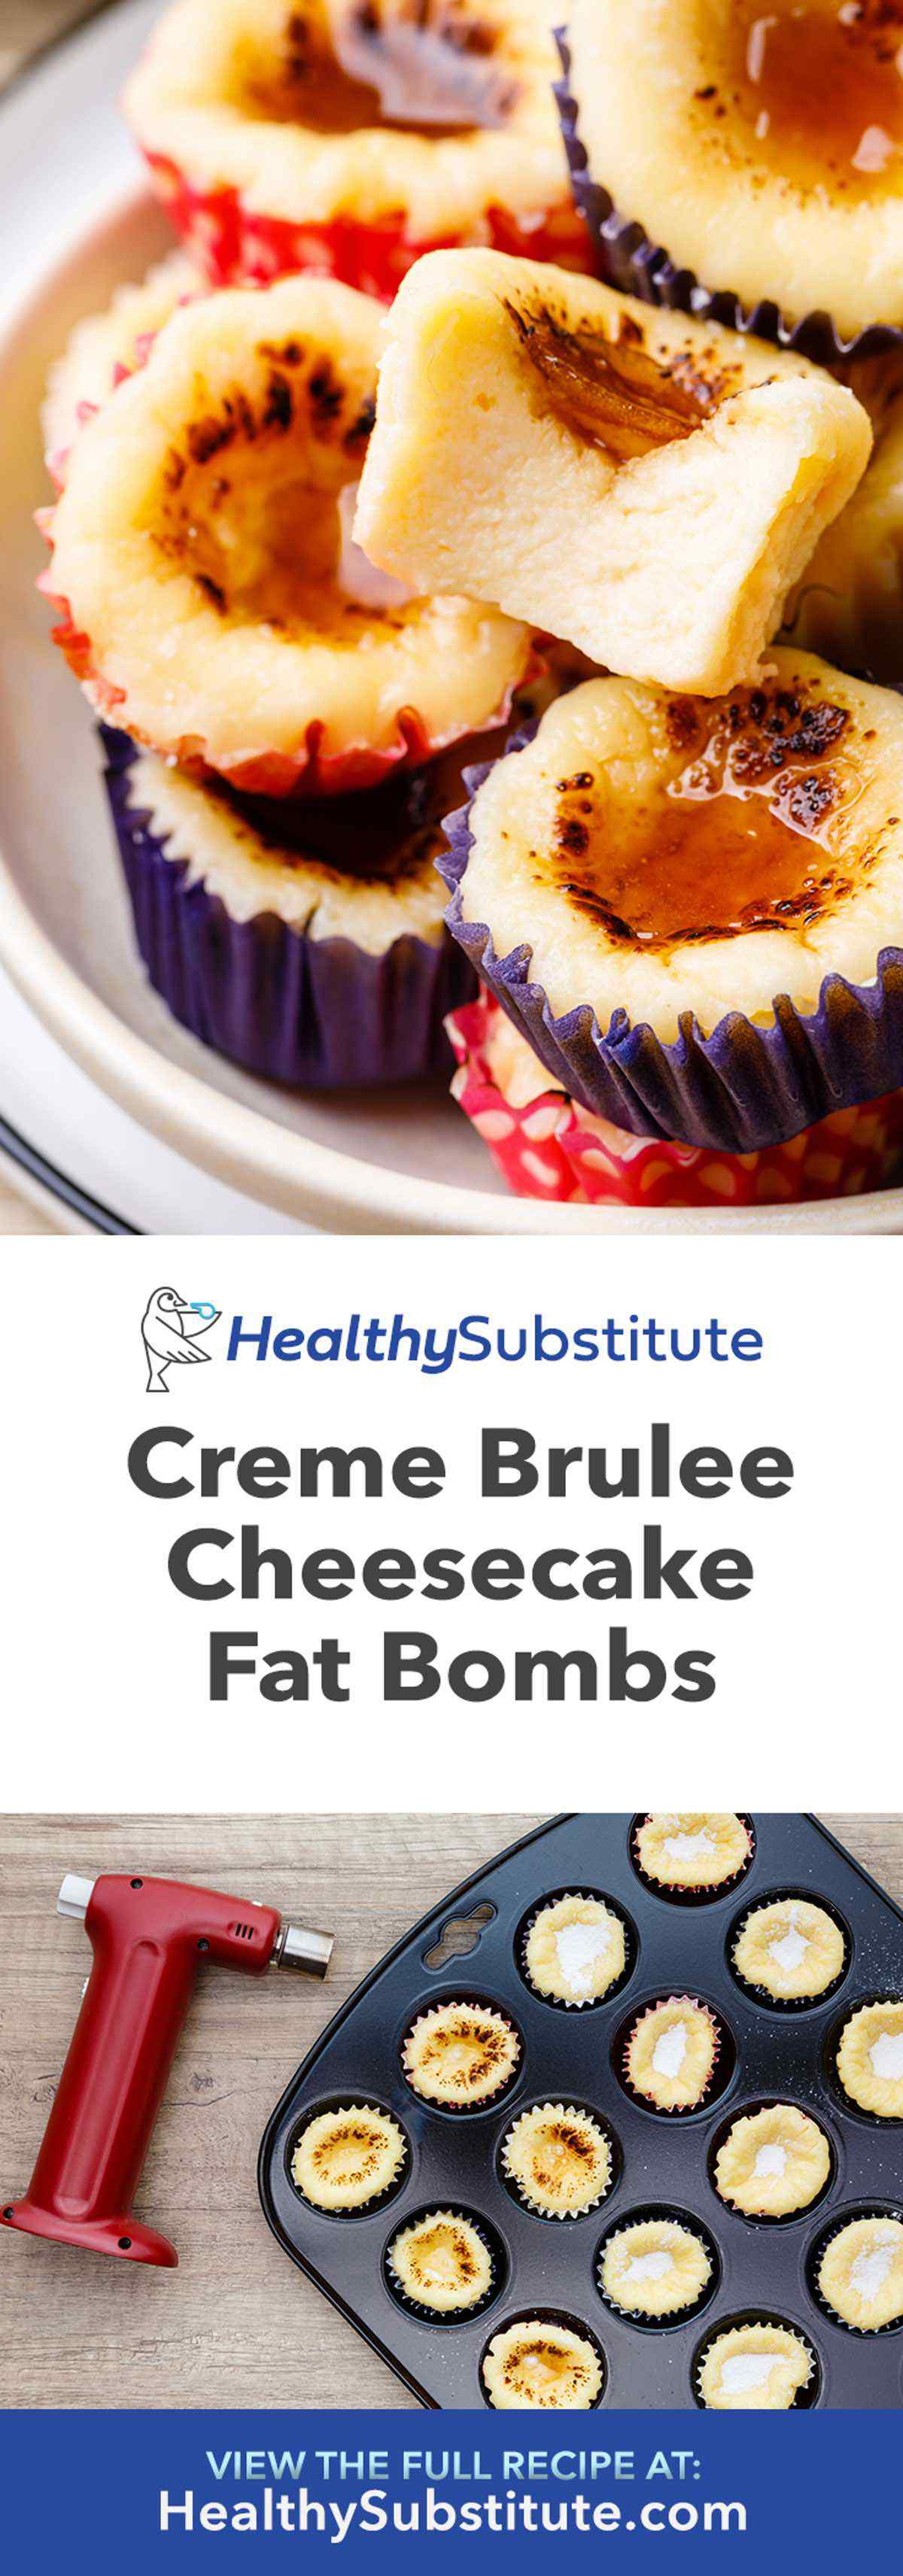 Creme Brulee Cheesecake Fat Bombs